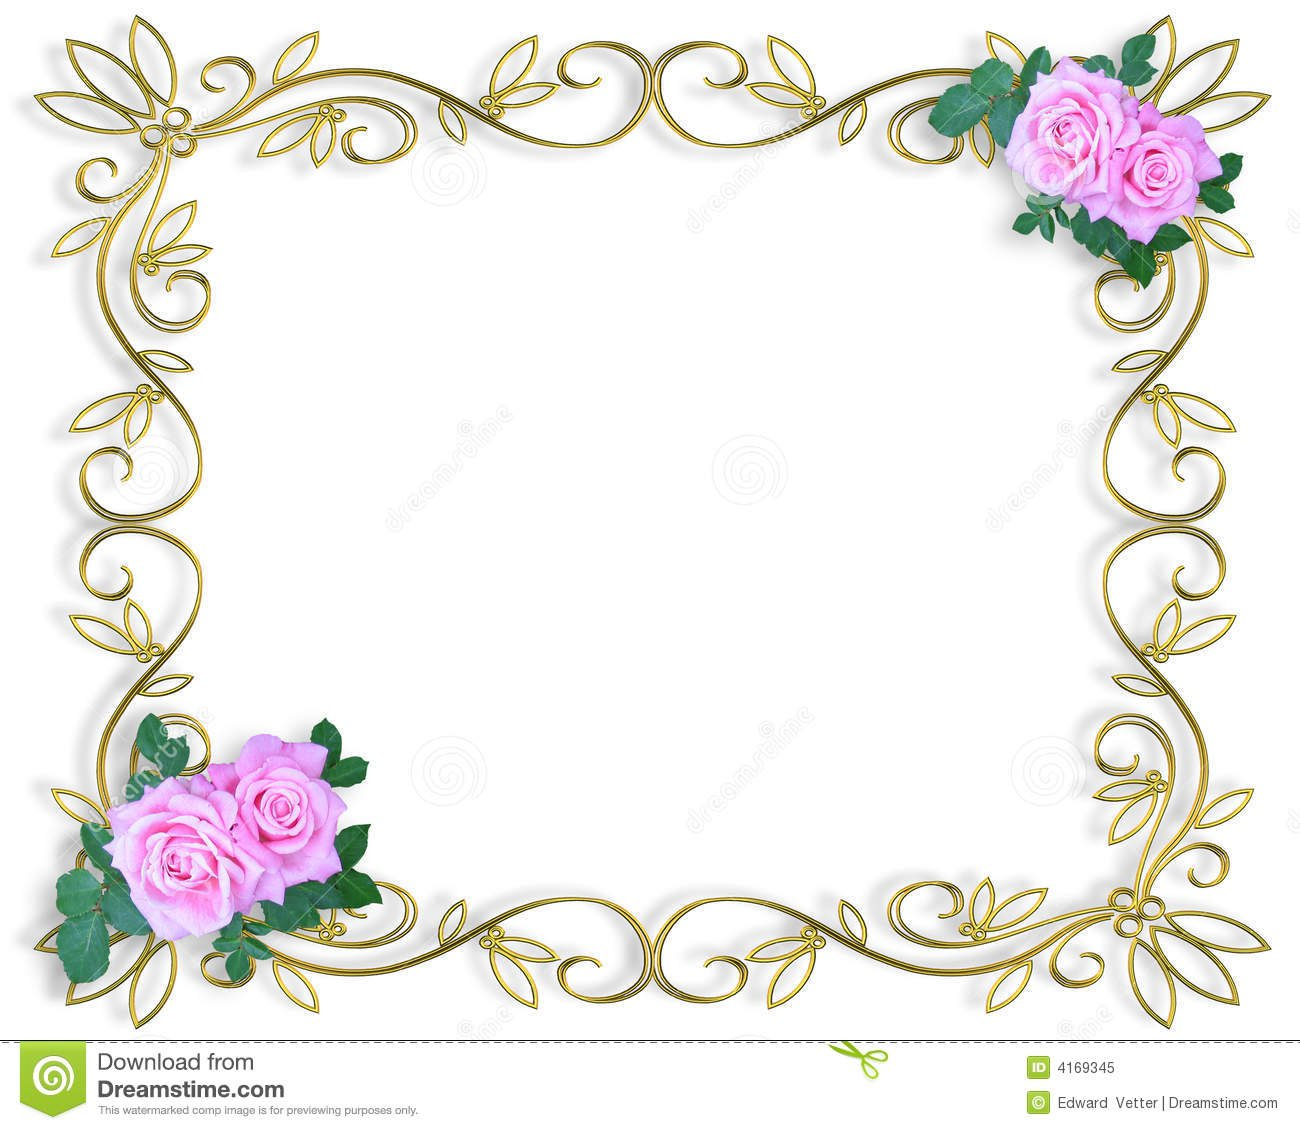 Gold Wedding Invitation Border Templates